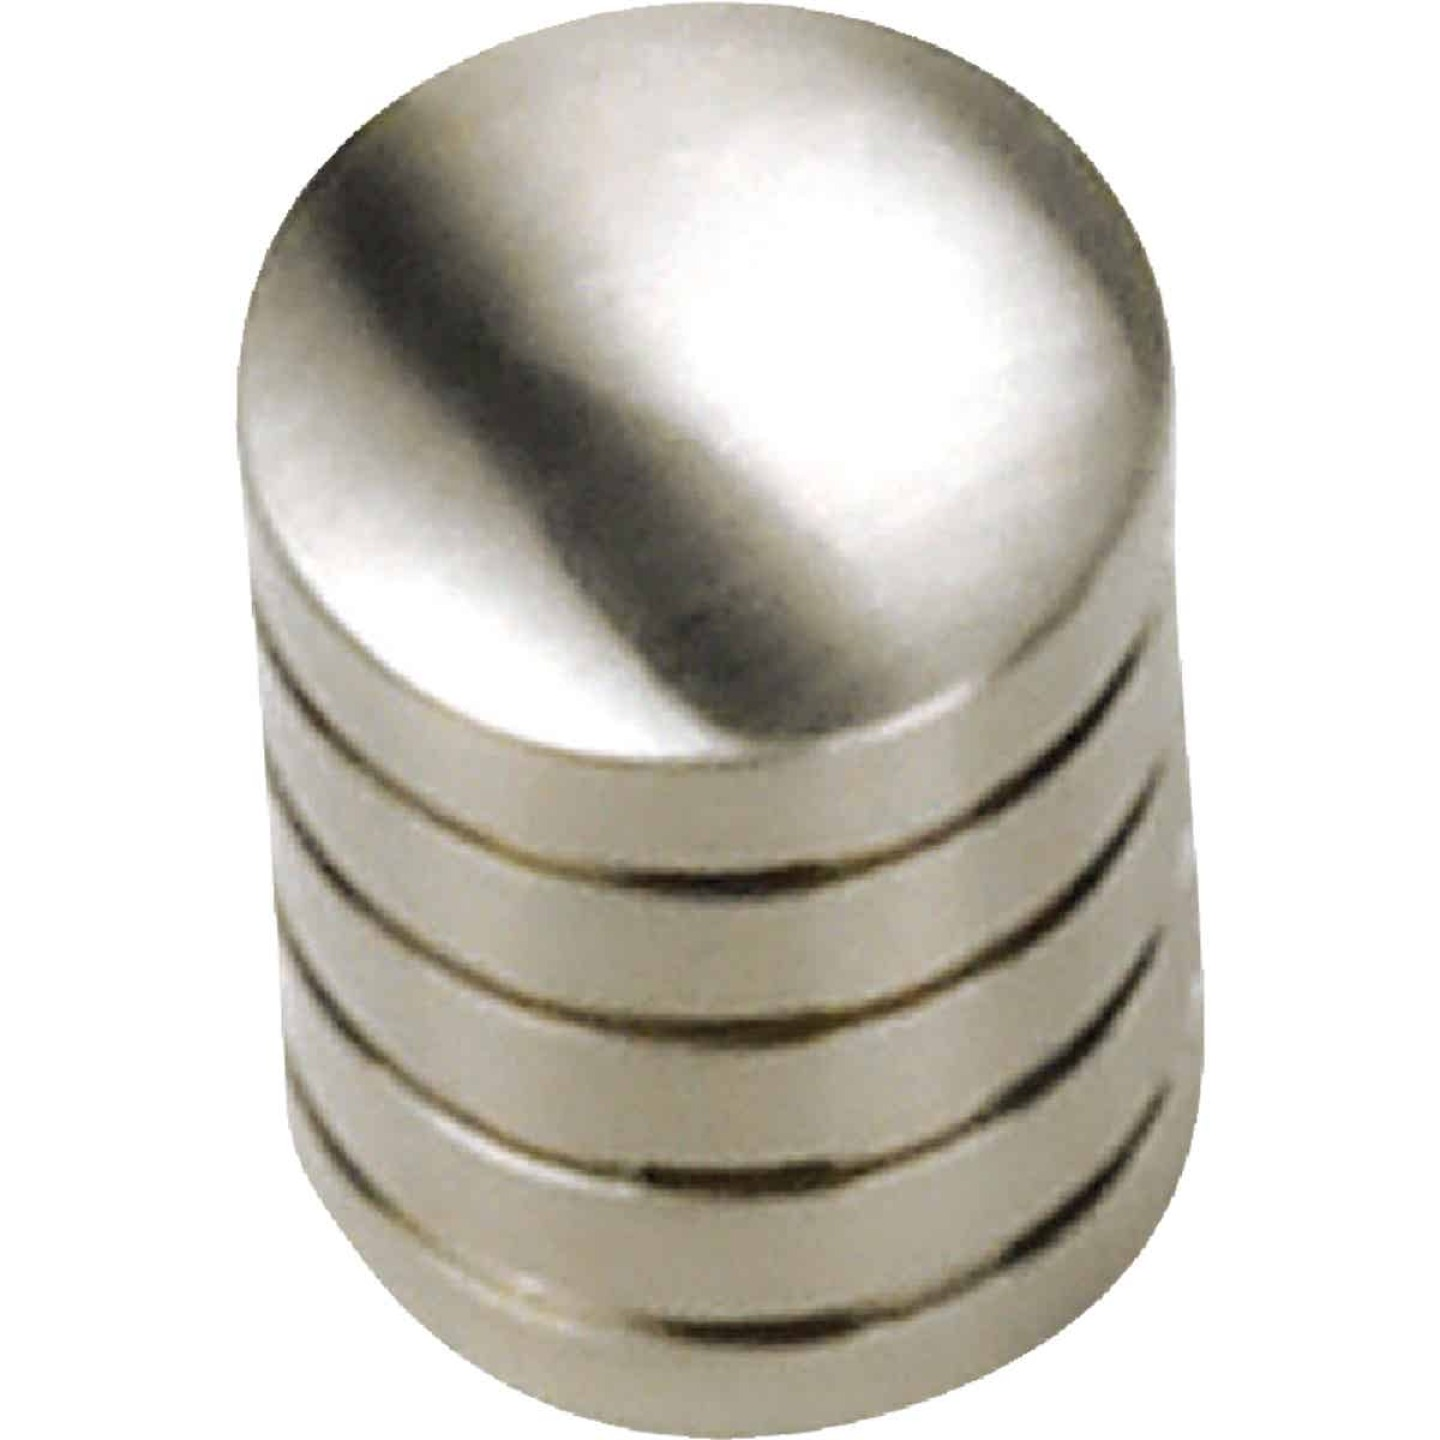 Laurey Brushed Satin Nickel 5/8 In. Cabinet Knob Image 1